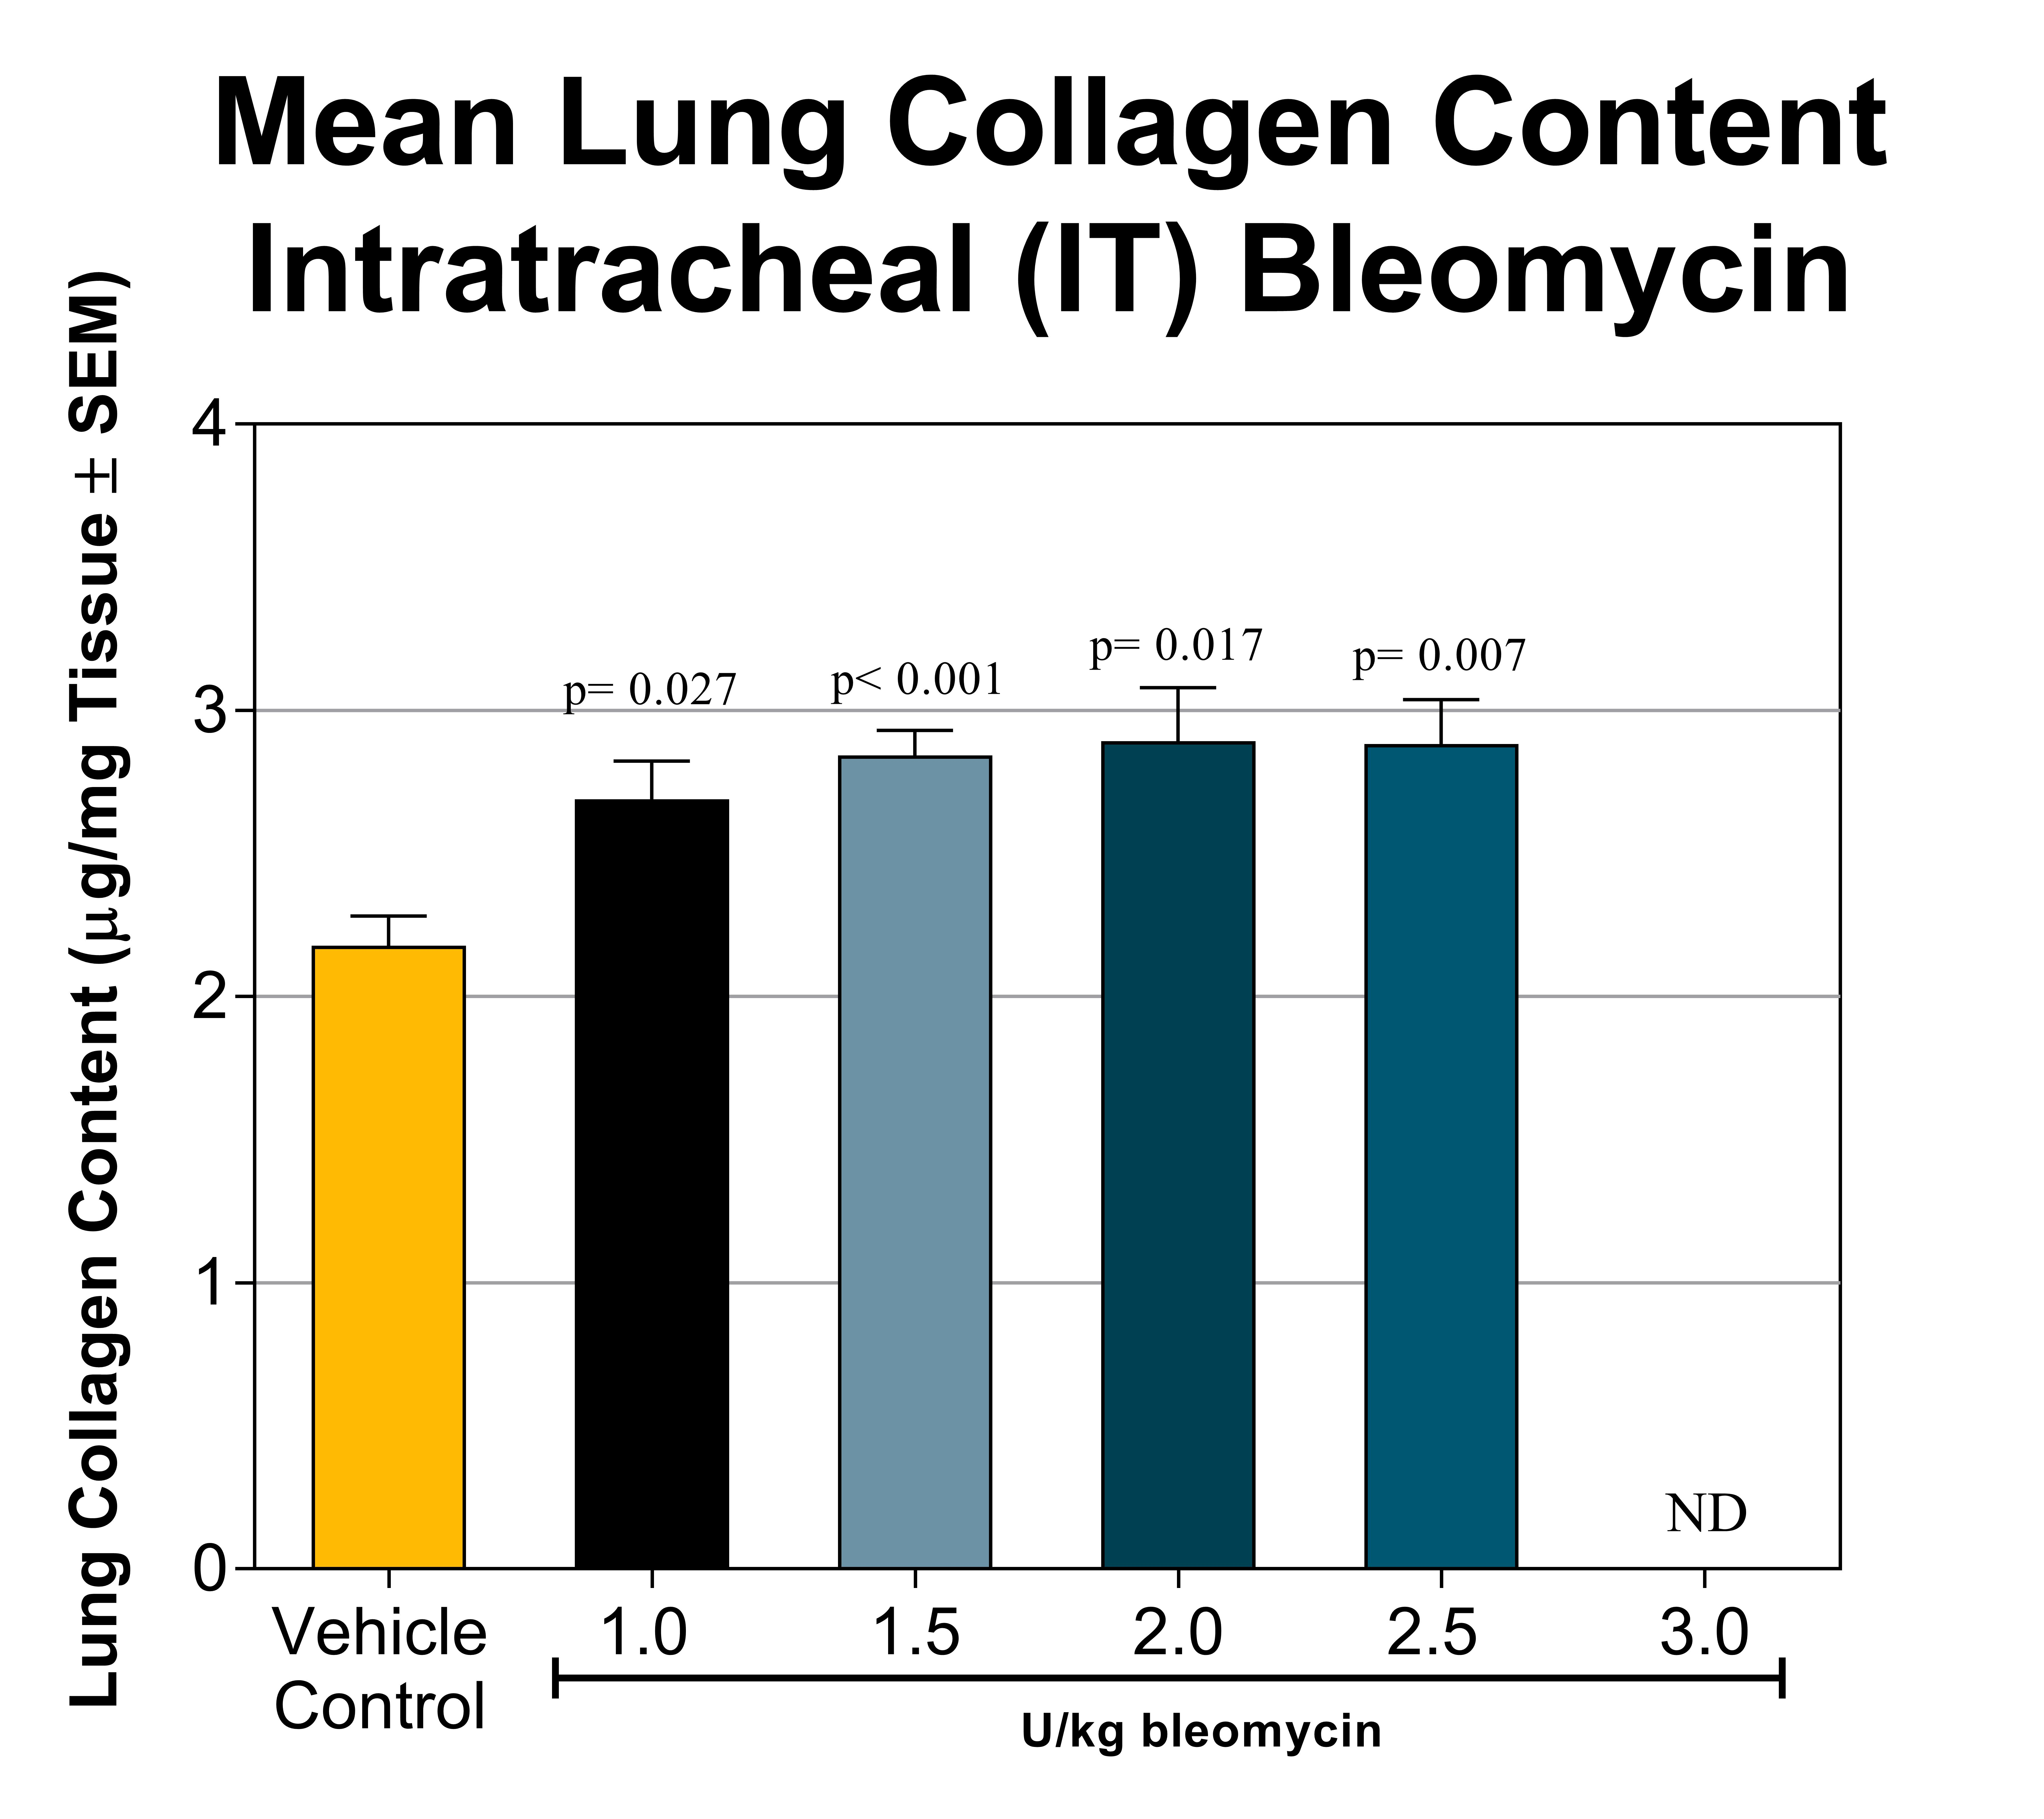 Lung collagen content resulting from intratracheal bleomycin exposure